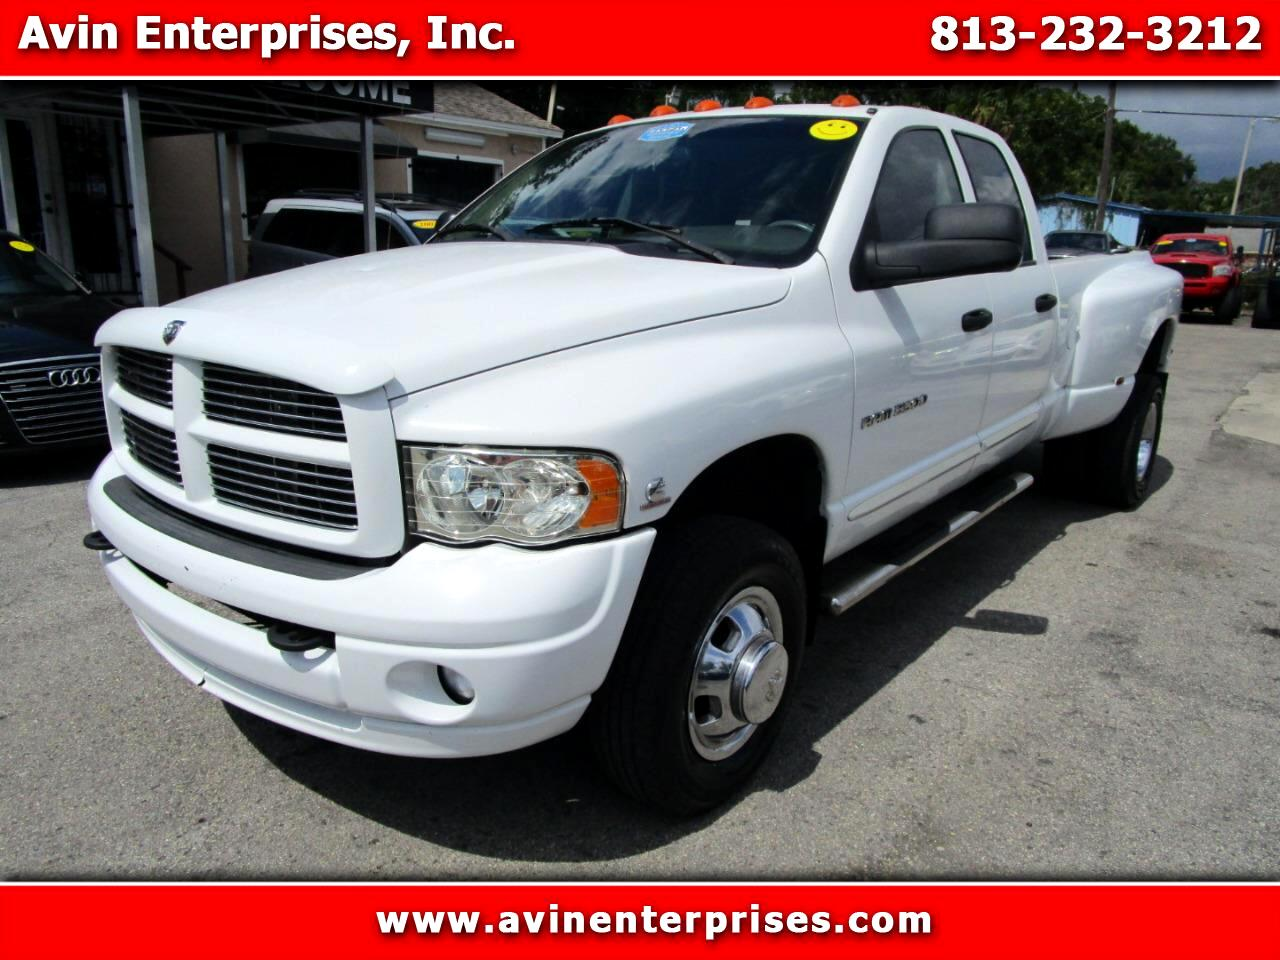 Dodge Ram 3500 Laramie Quad Cab Long Bed 4WD DRW 2005